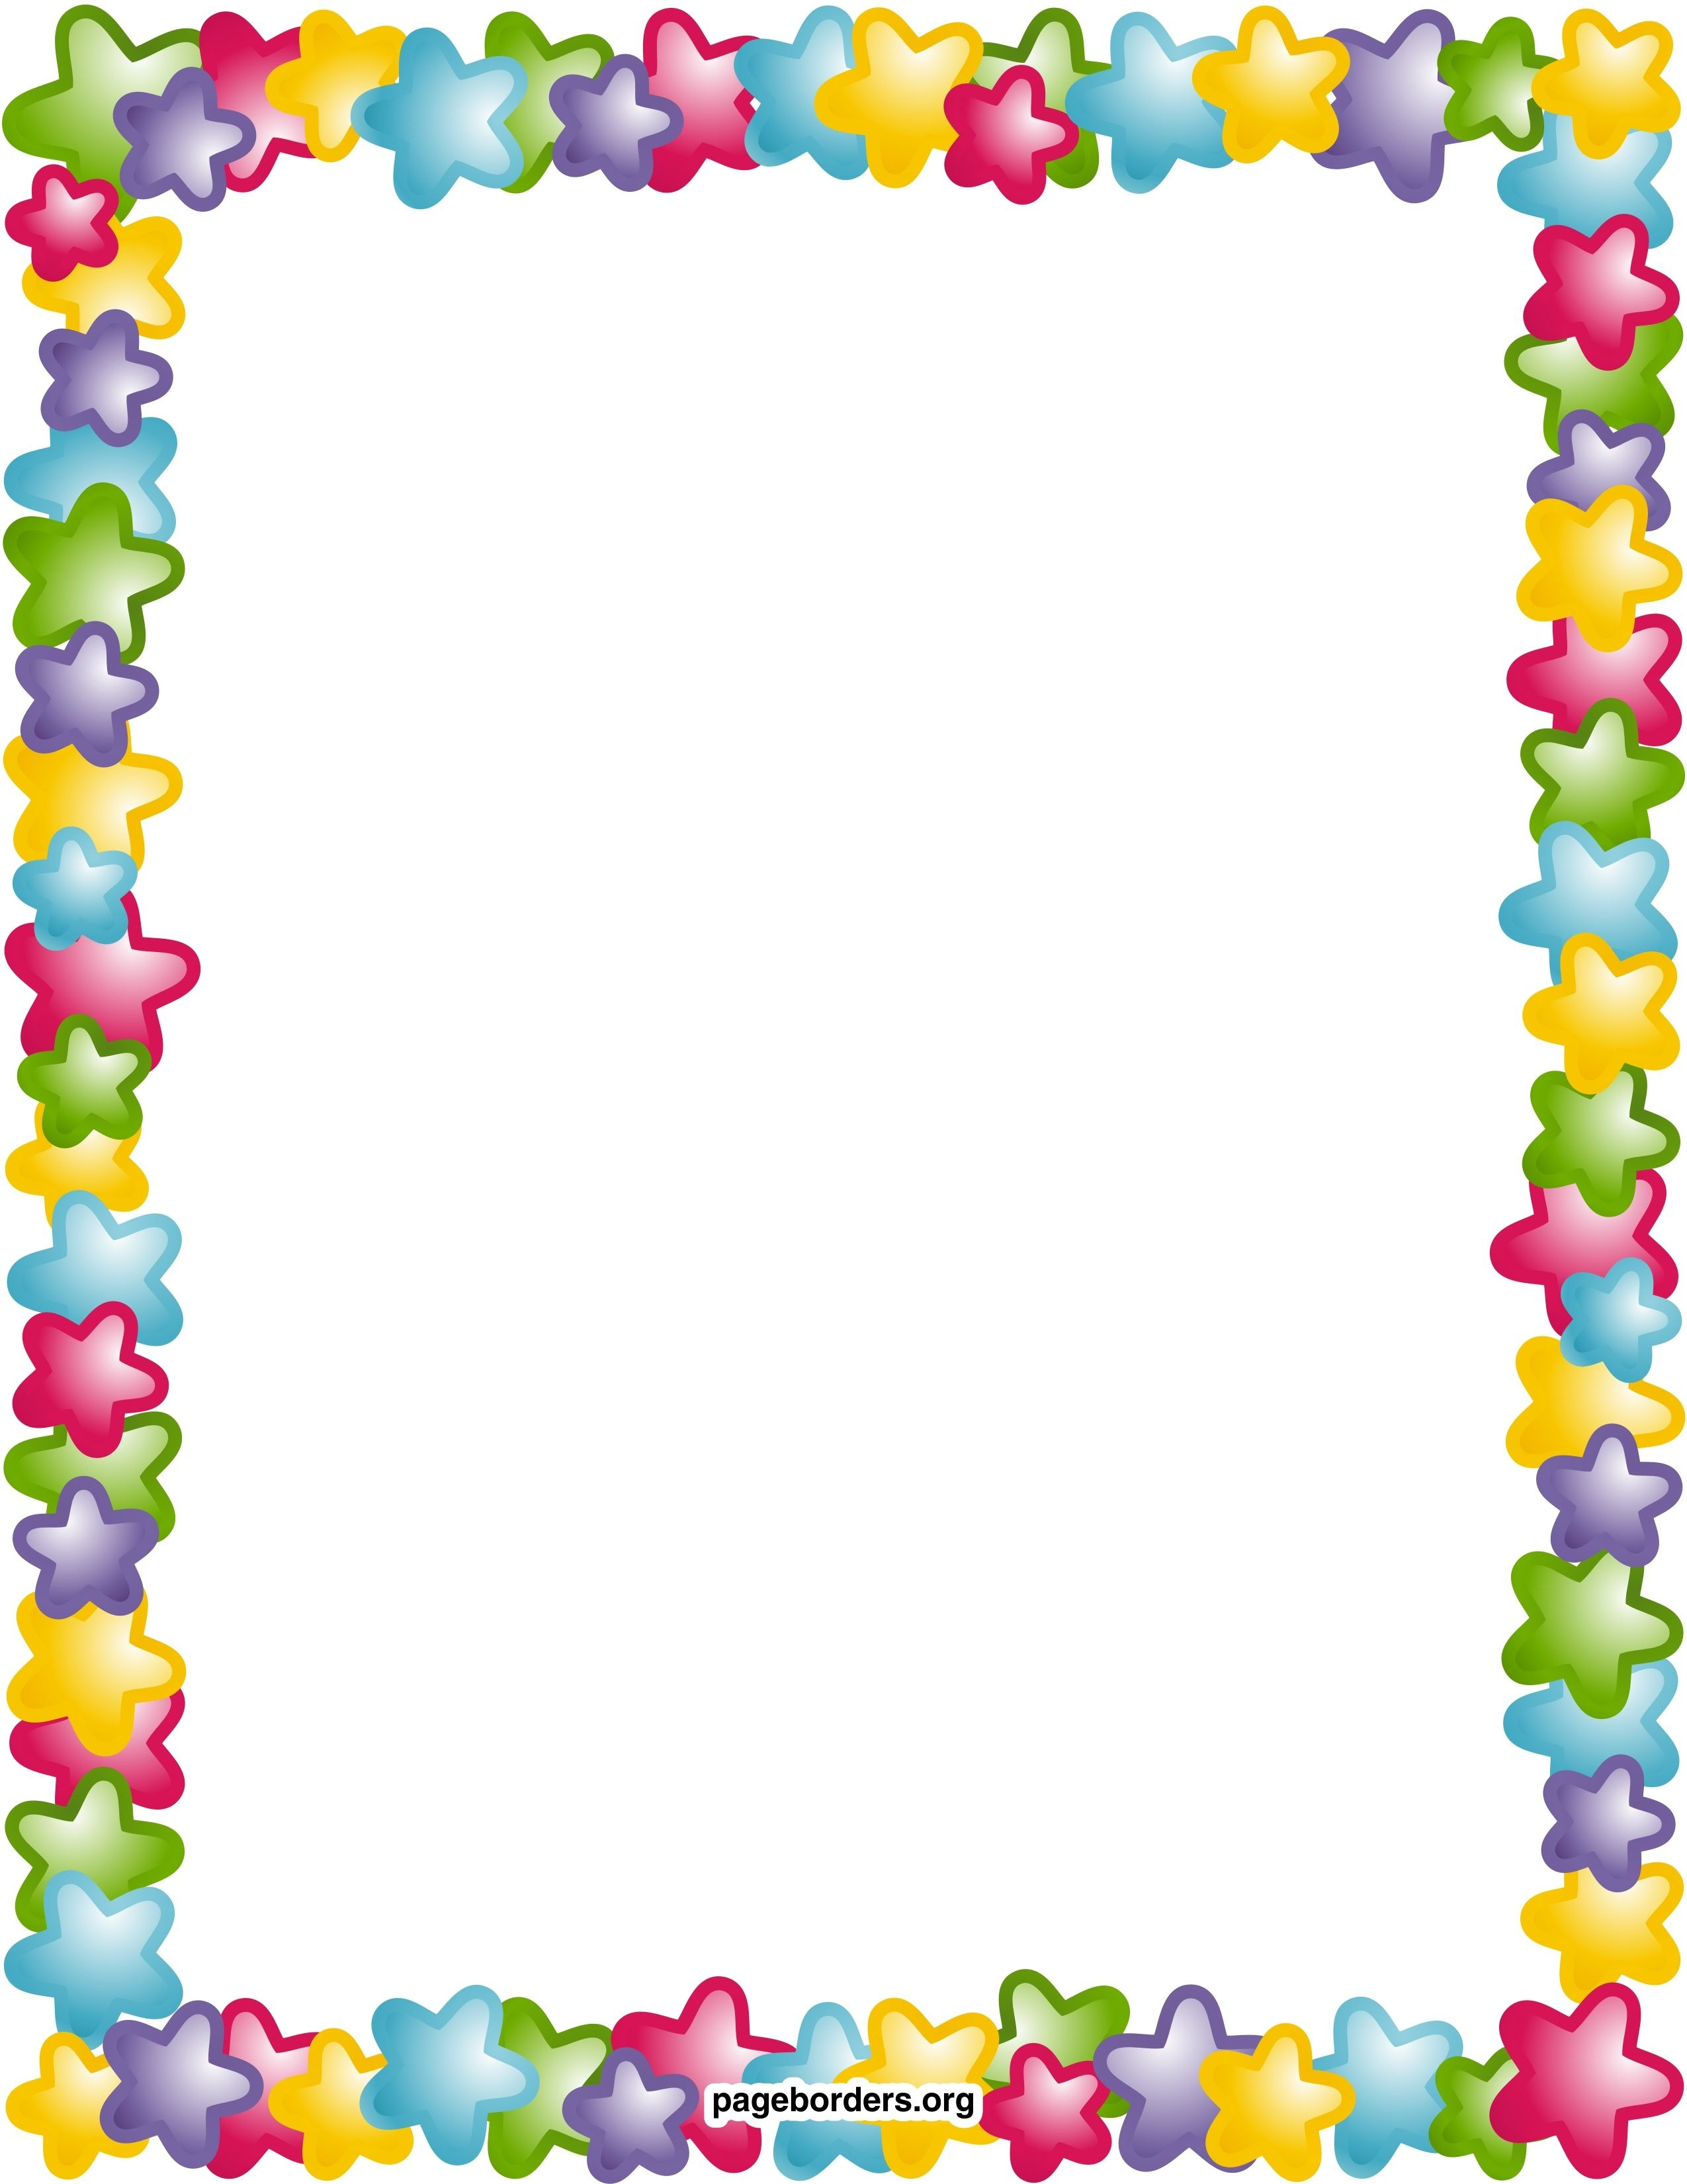 Free Printable Page Borders And Frames Image Gallery - Photonesta - Free Printable School Stationery Borders